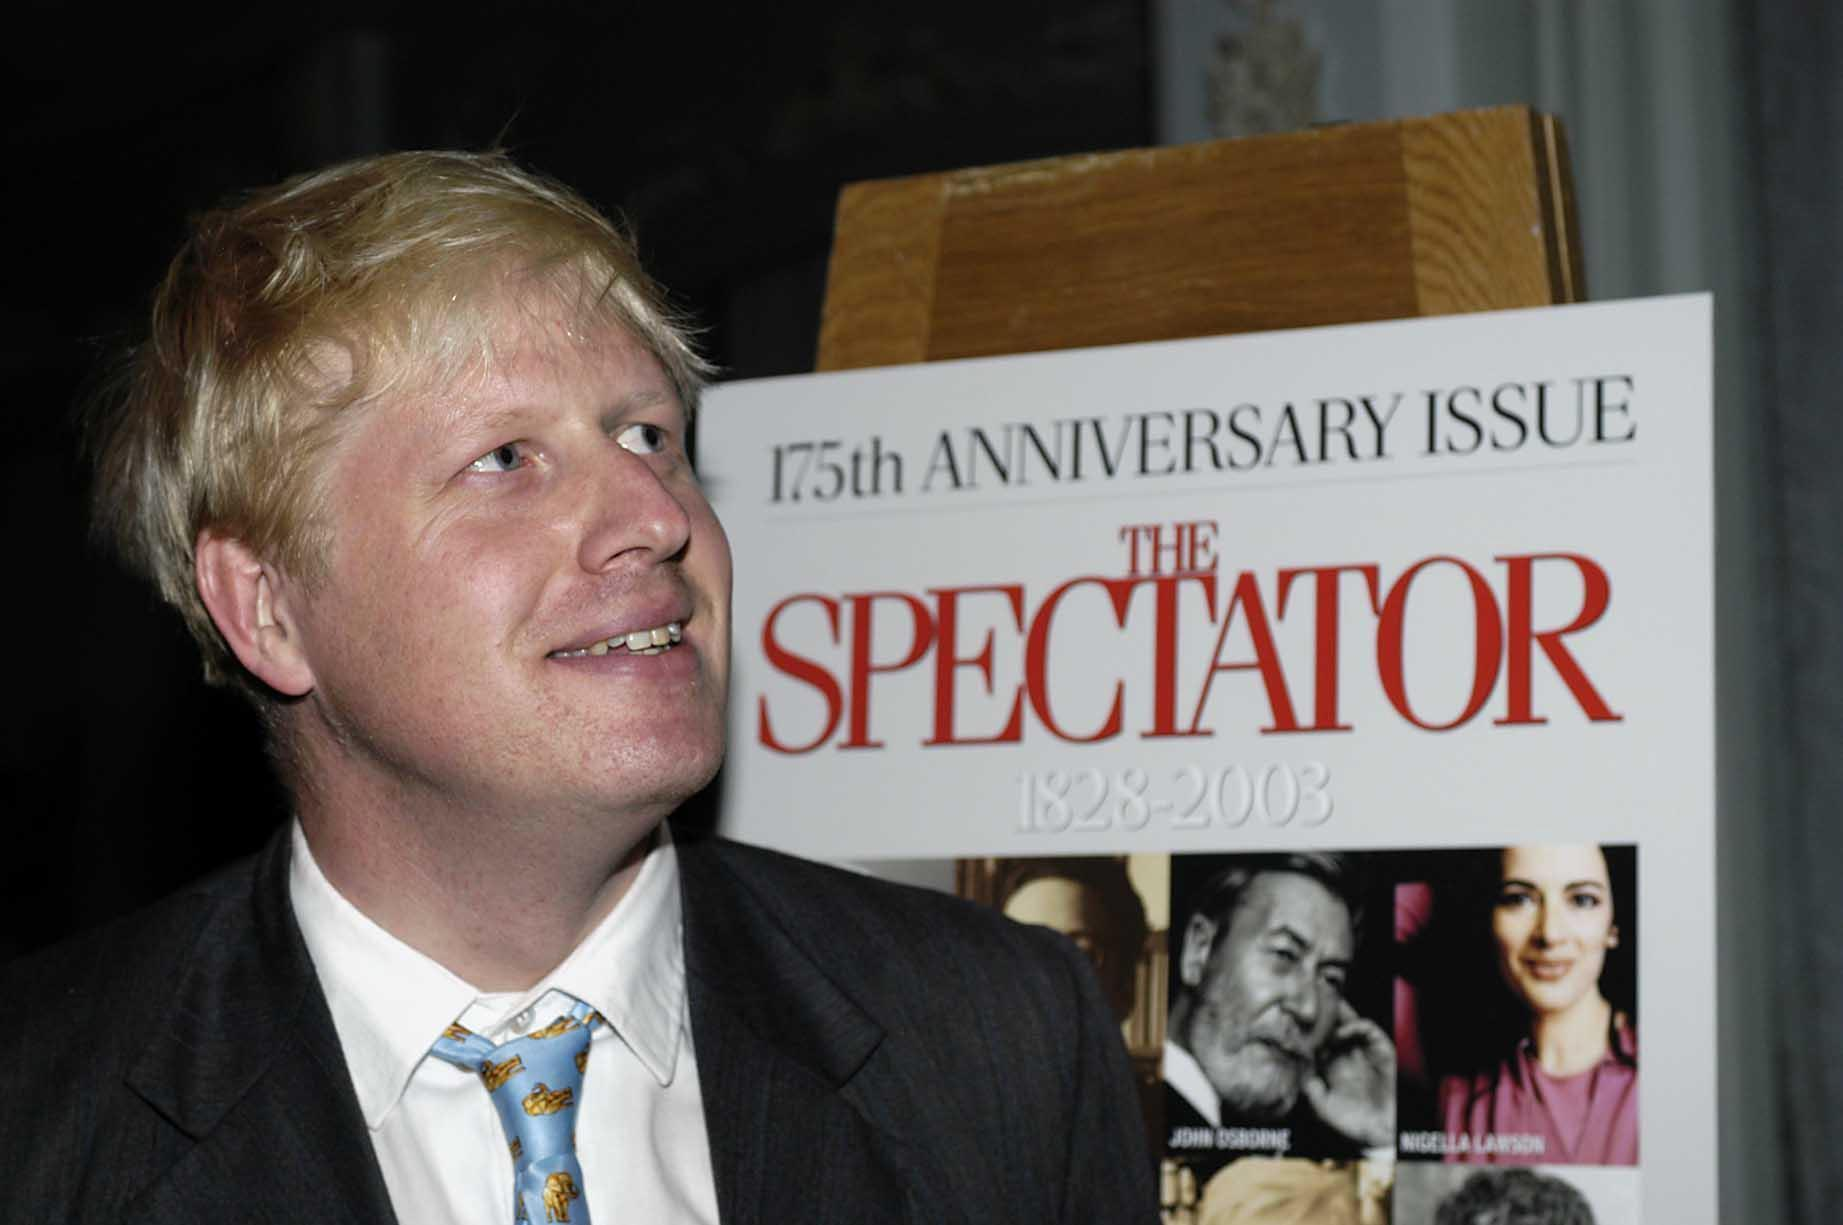 Boris Johnson, Conservative MP and editor of The Spectator magazine, at a party to mark The Spectator's 175th anniversary, at the Four Seasons Hotel, Park Lane, London. Among those also in attendance at the party were Home Secretary David Blunkett, broadcasters David Dimbleby and Andrew Neil, and Ulster Unionist leader David Trimble.  16/10/2004  The Spectator editor Johnson, has been ordered by Tory leader Michael Howard to go to Liverpool to apologise for an article in his magazine accusing its people of 'wallowing' in their 'victim status'. Mr Johnson, who is also the Conservative shadow minister for the arts, said he would be travelling to the city next week in a 'spirit of complete humility' to apologise in person for the offence caused.